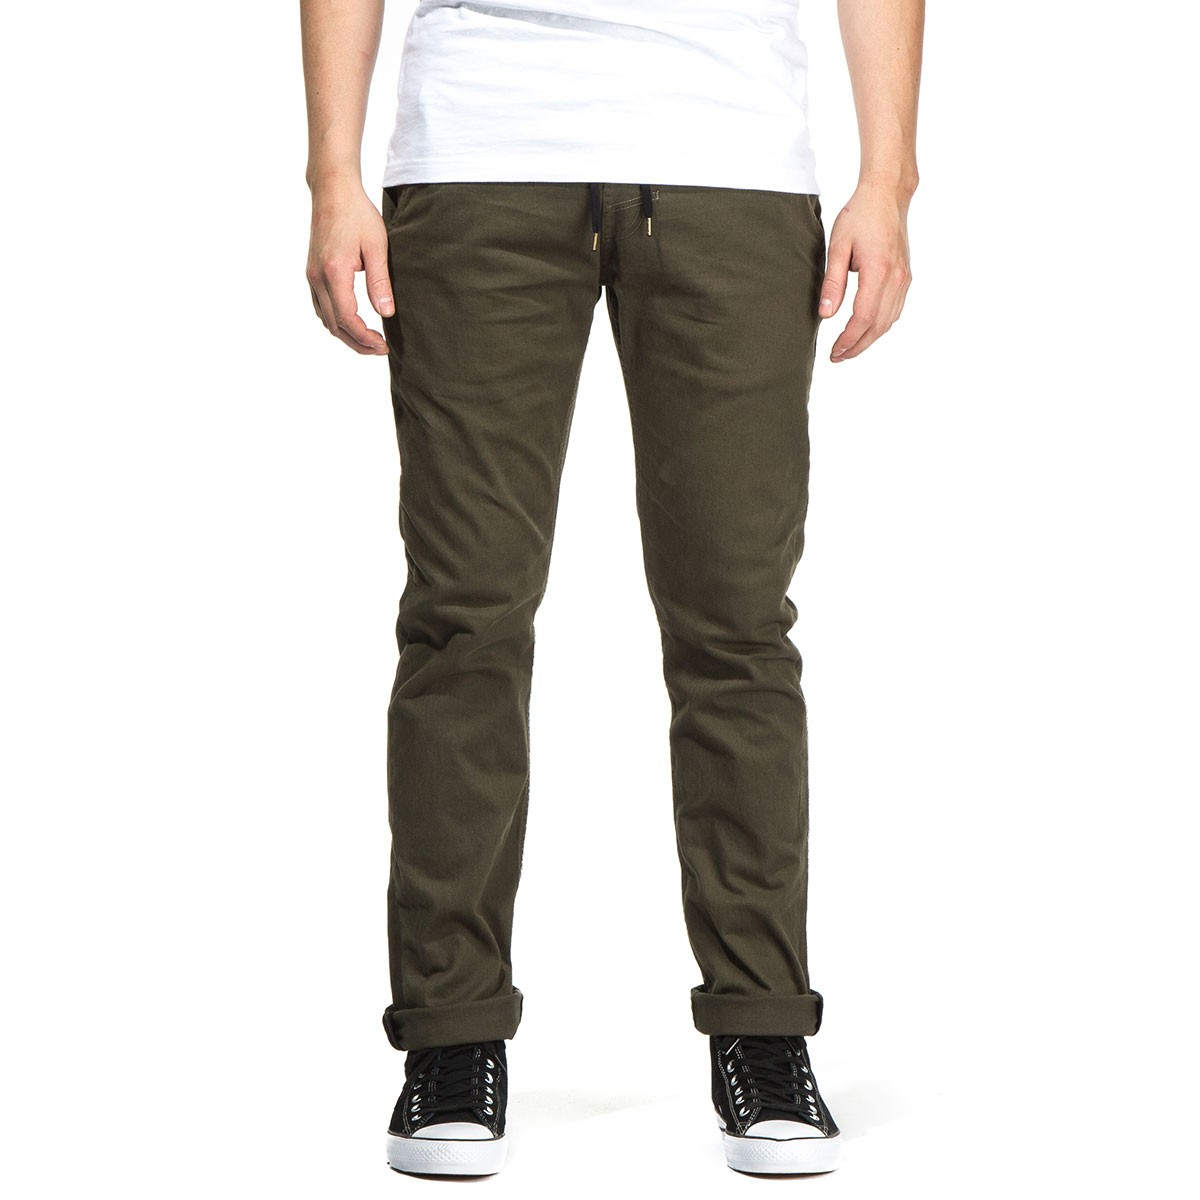 Imperial Motion Chapter Chino Pants - Olive